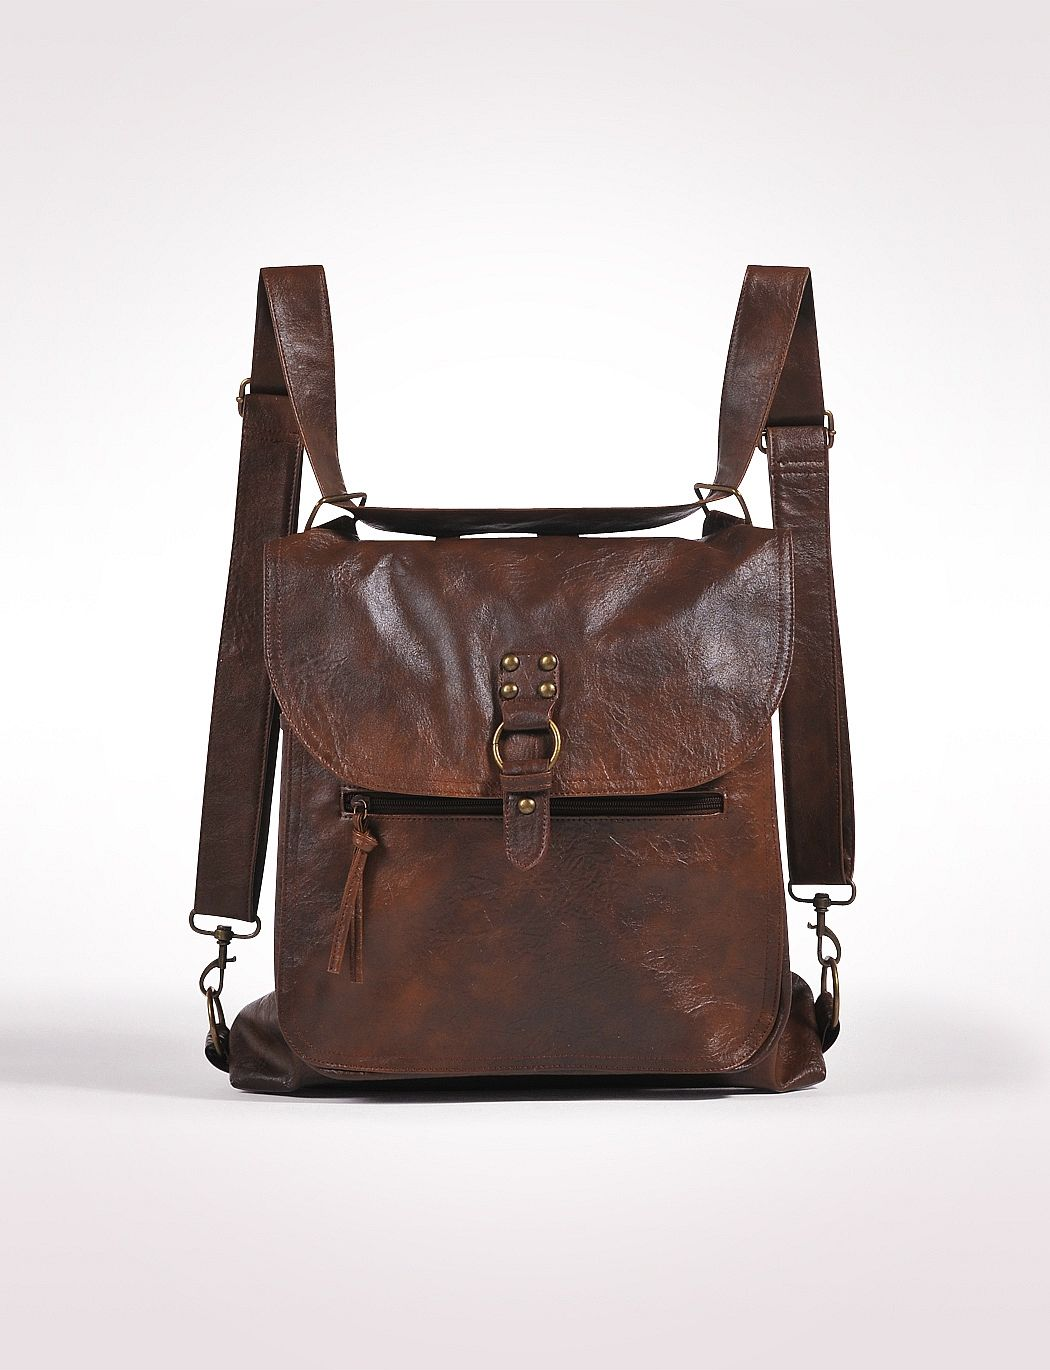 brown leather convertible bag with traditional purse style and ...